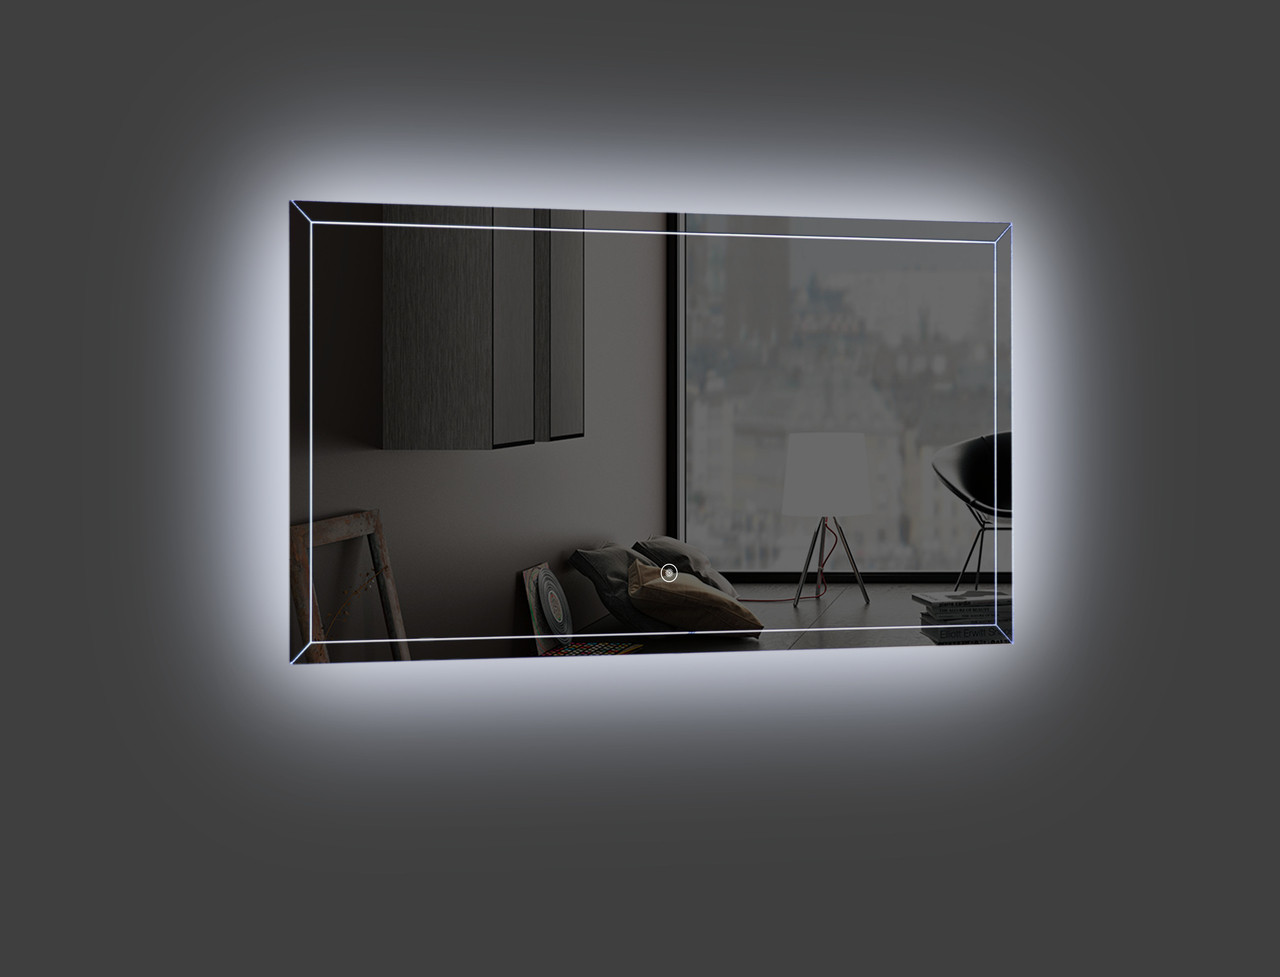 Light Bathroom Mirror Fero 40 Inch Wall Mounted Bathroom Mirror With Led Light